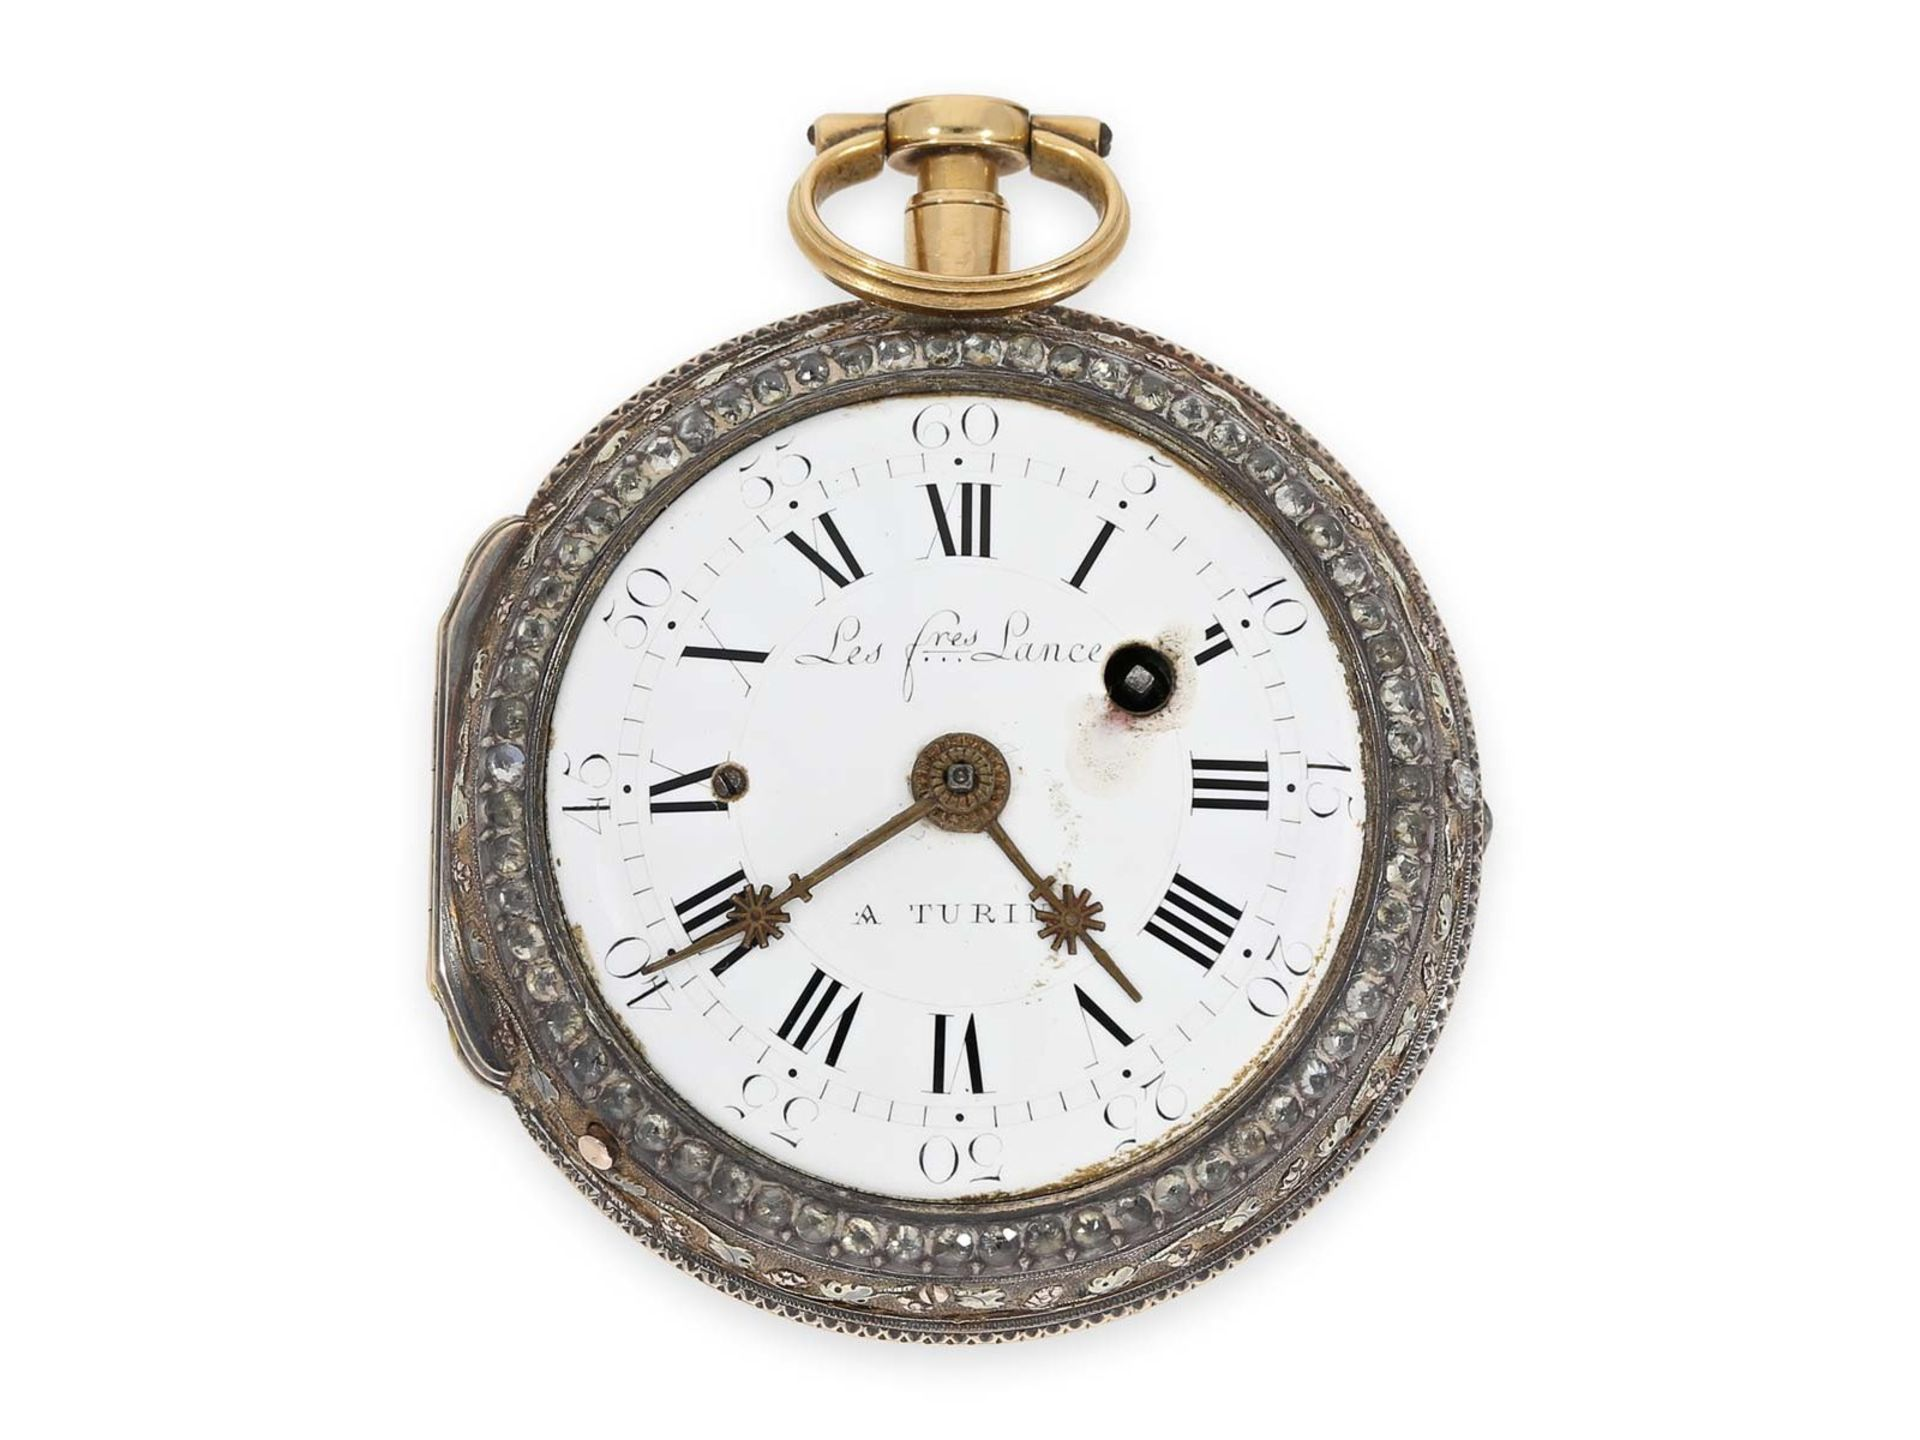 Pocket watch: extraordinary large Italian verge watch repeater a toc et a tact, Les Freres Lance - Bild 2 aus 4